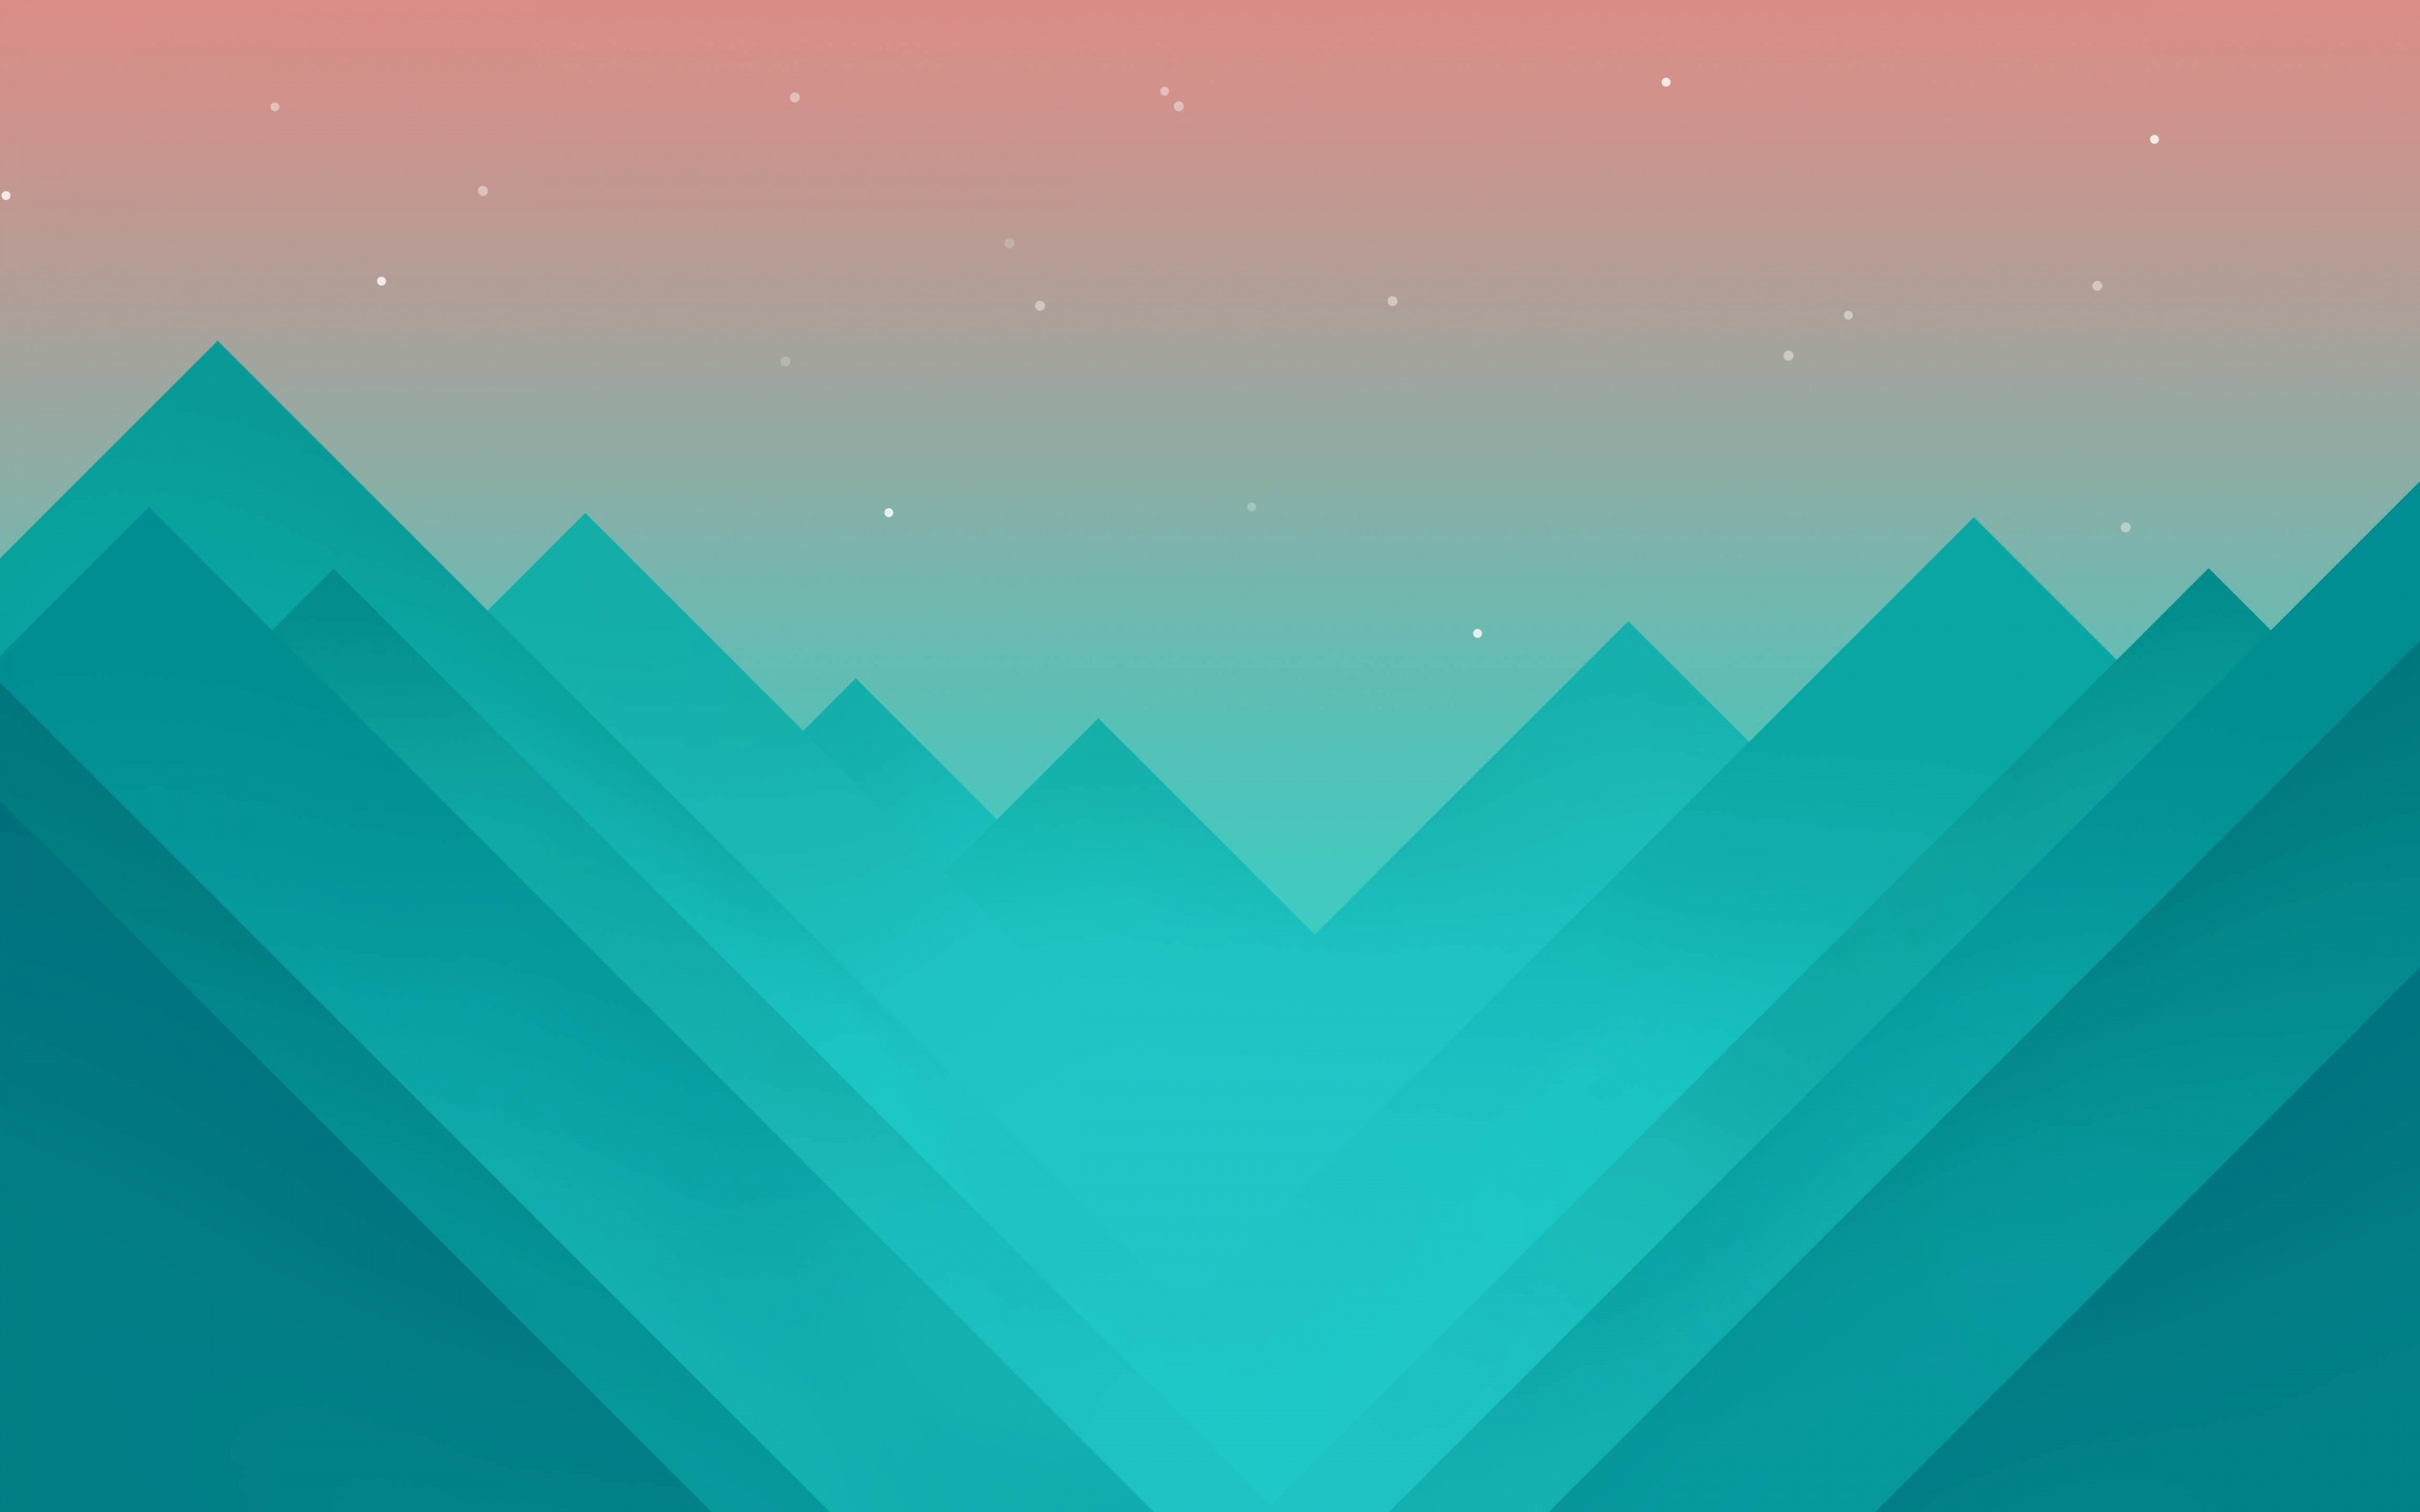 Monument Valley Hd Wallpaper For 2880x1800 Screens